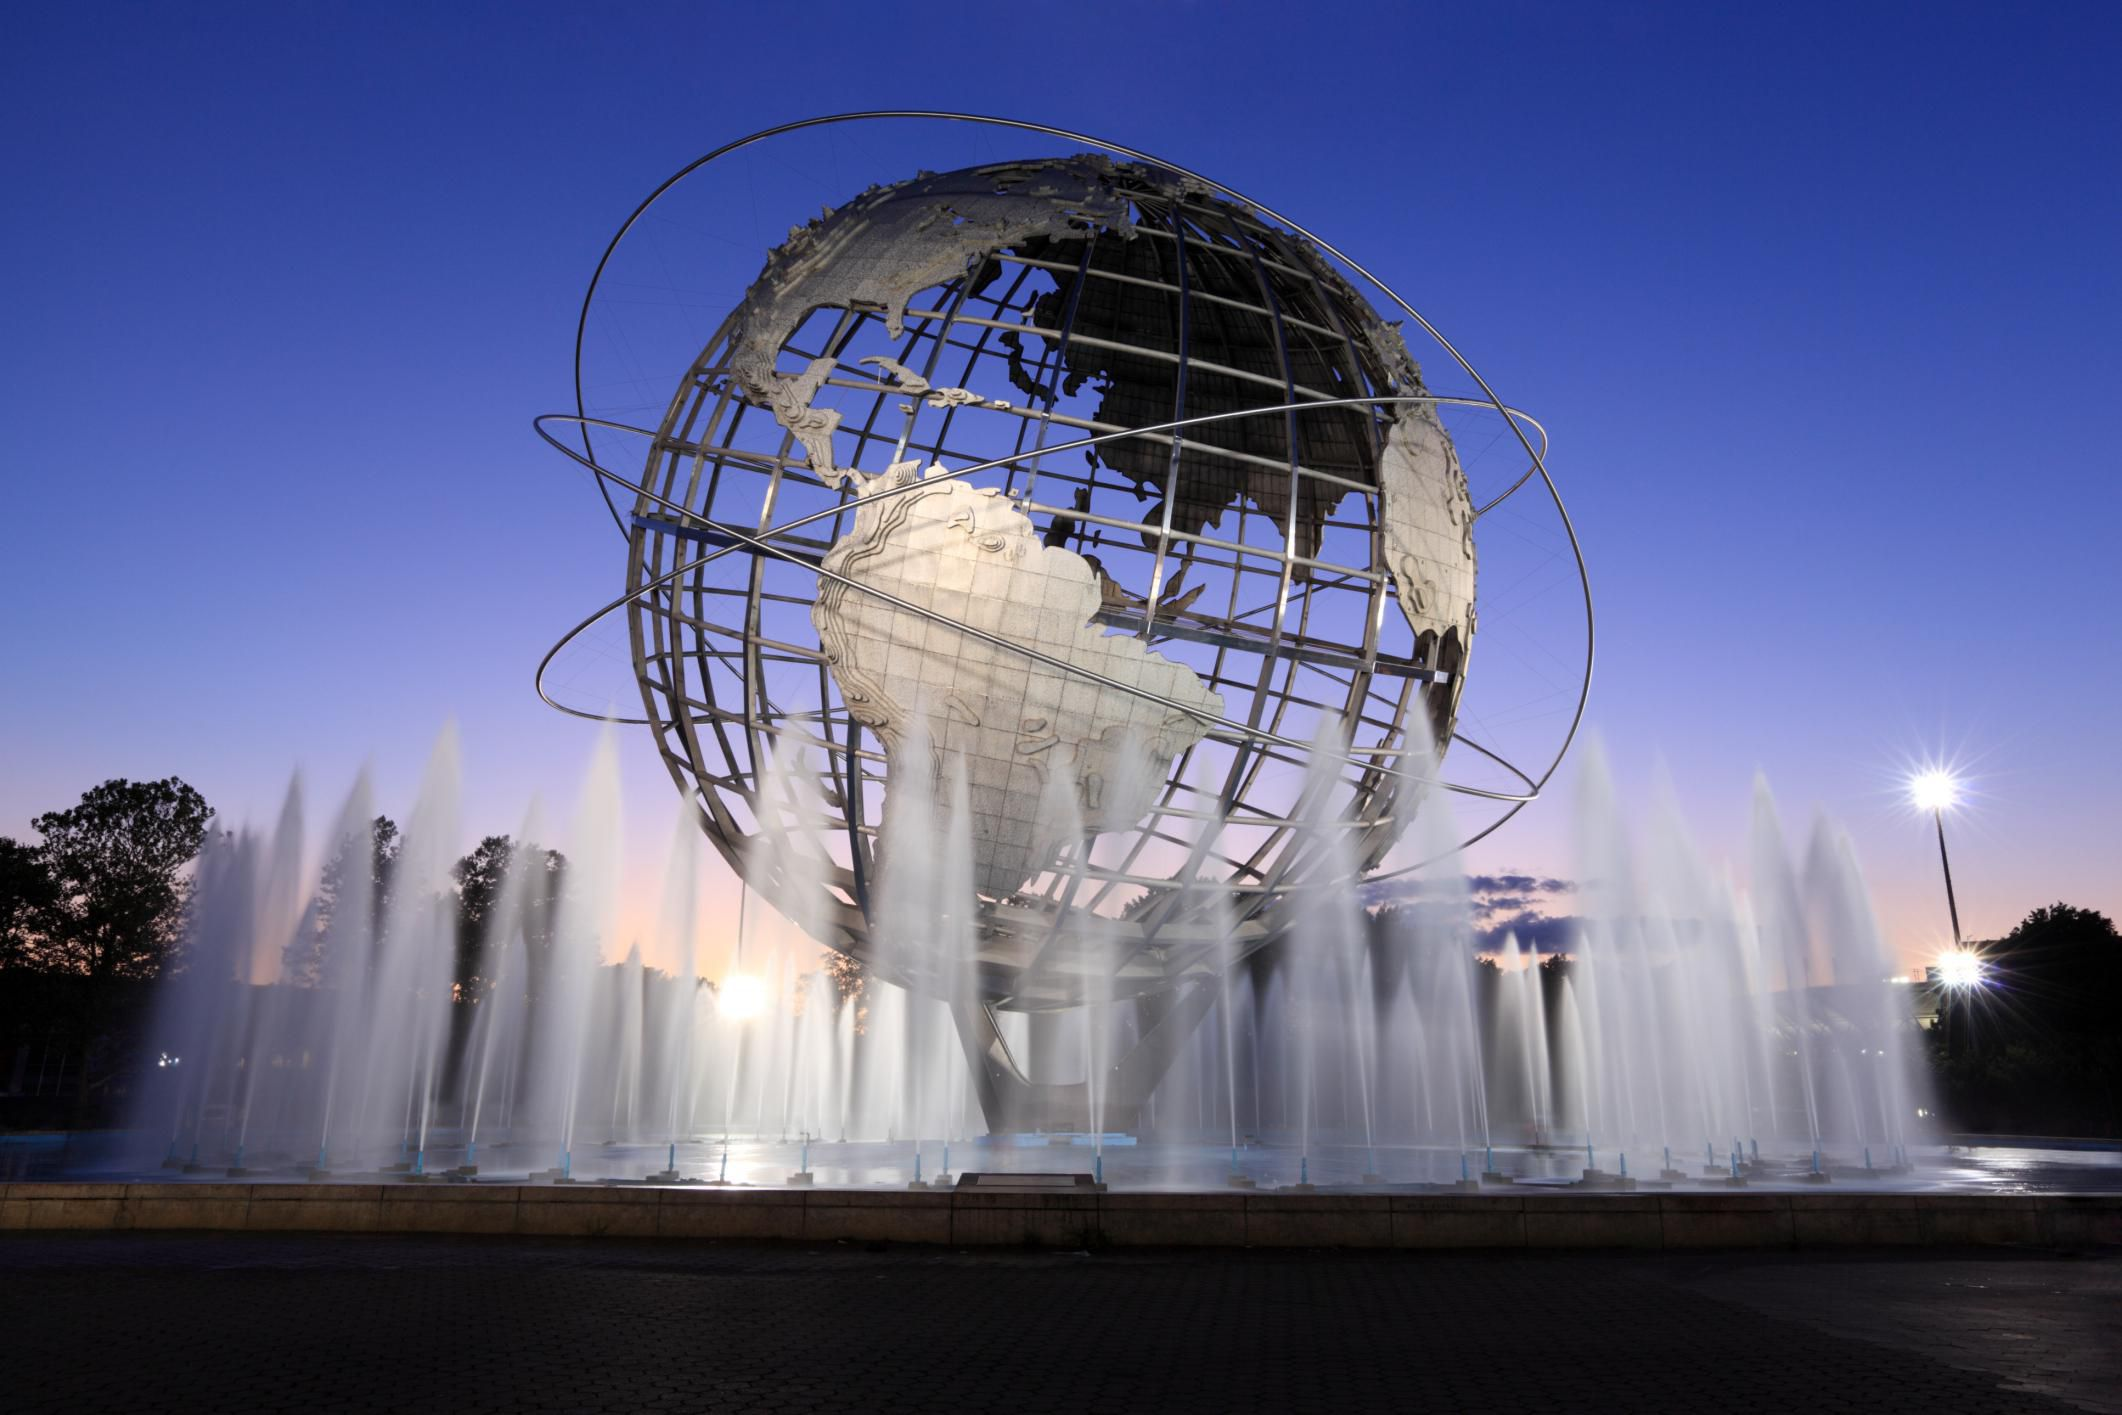 Things to do in queens new york for Things to do in nyc evening